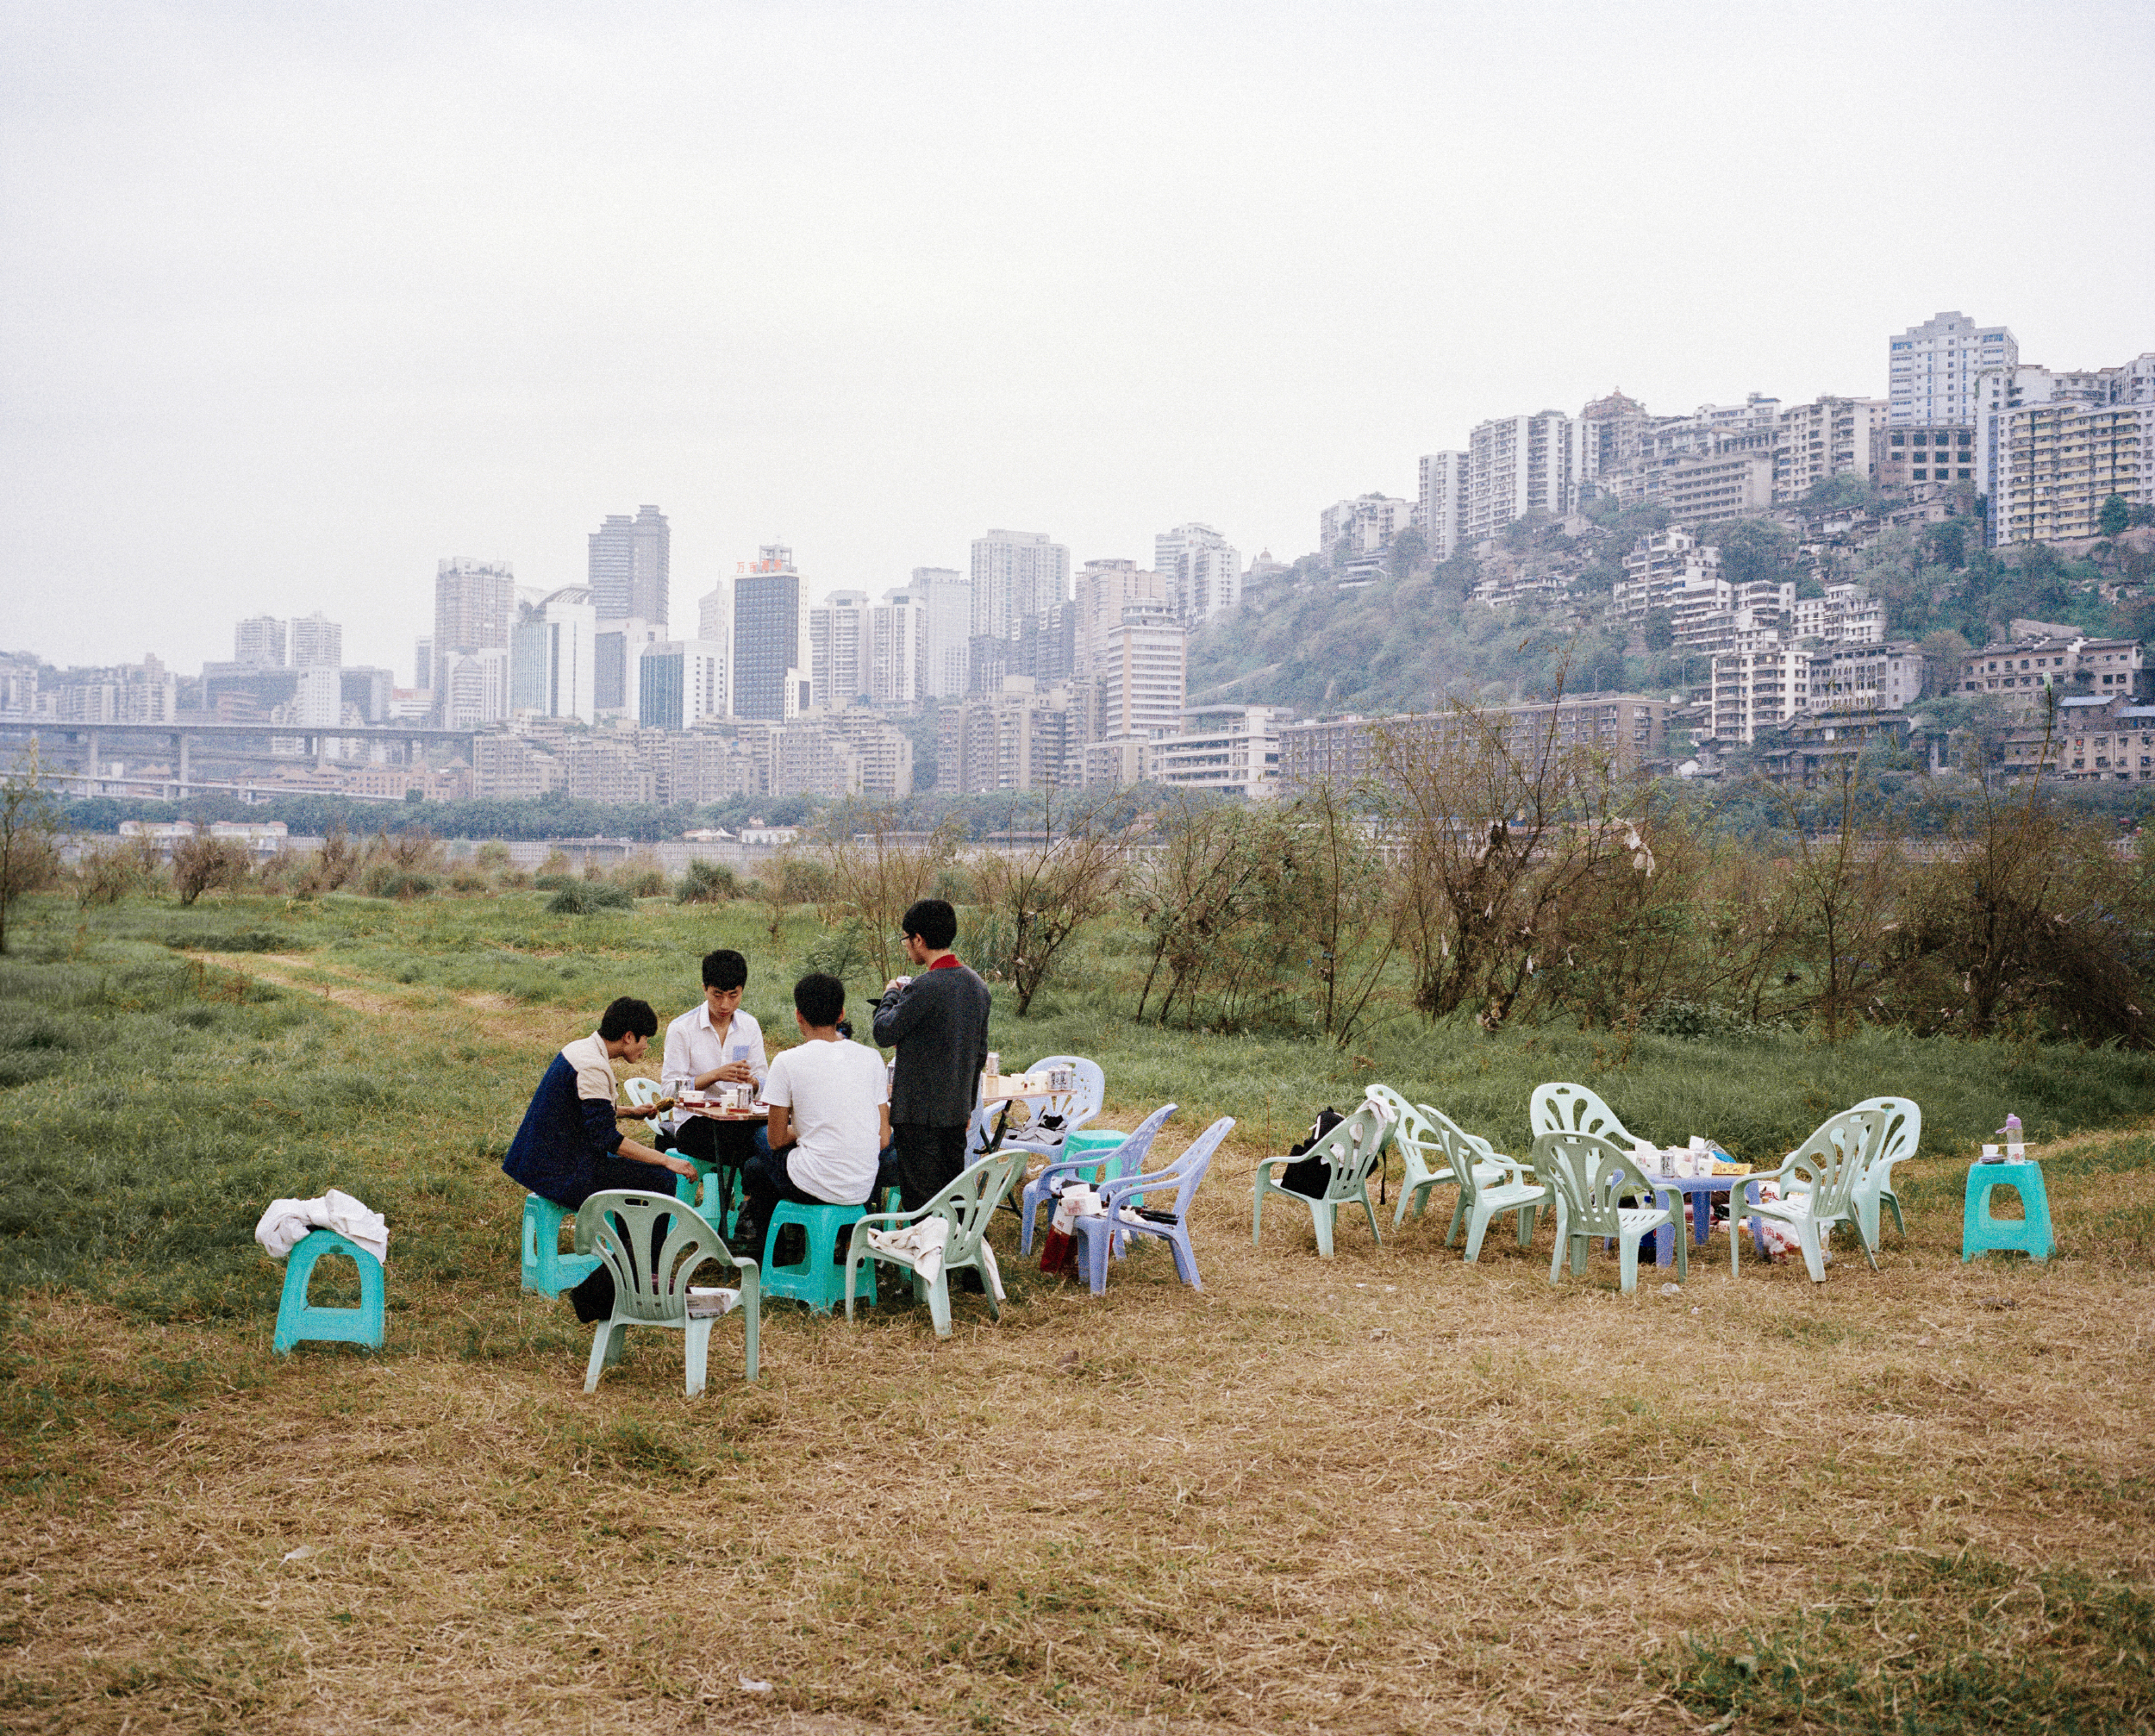 Picnic on island. Chongqing, China, 2015.